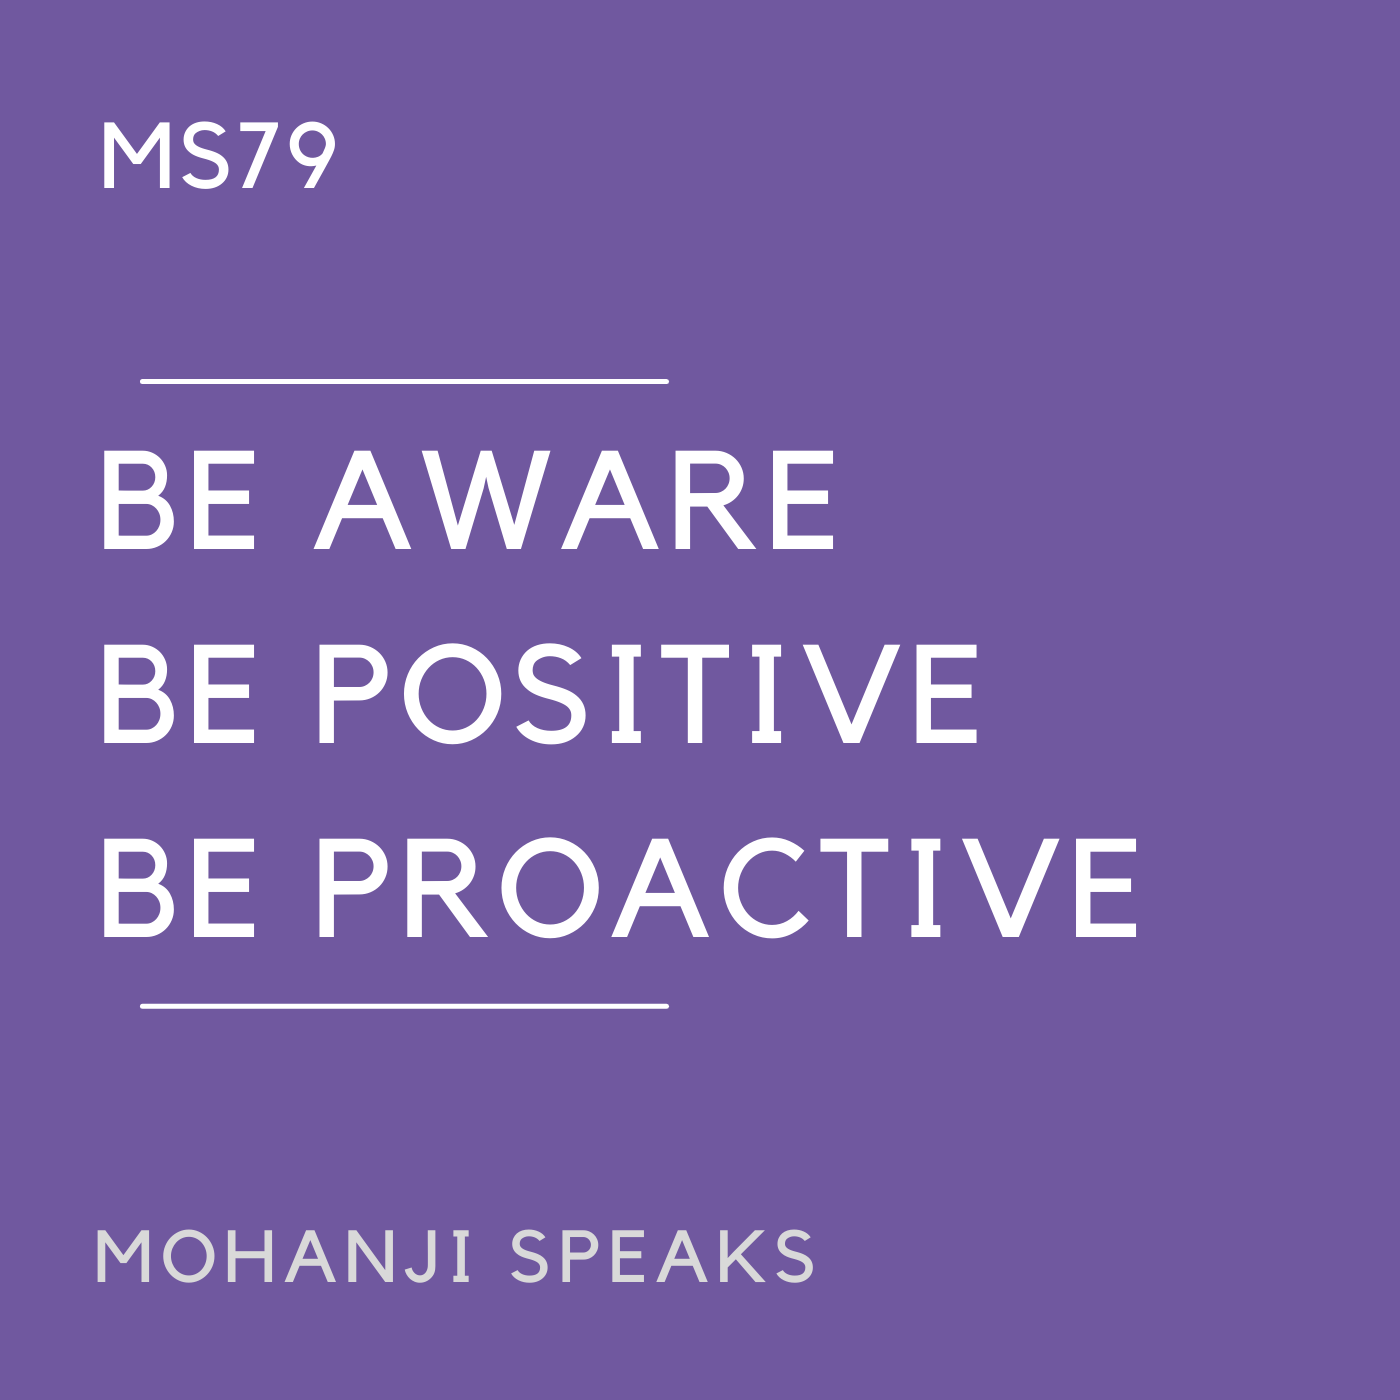 MS79 - Be Aware, Be Positive, Be Proactive